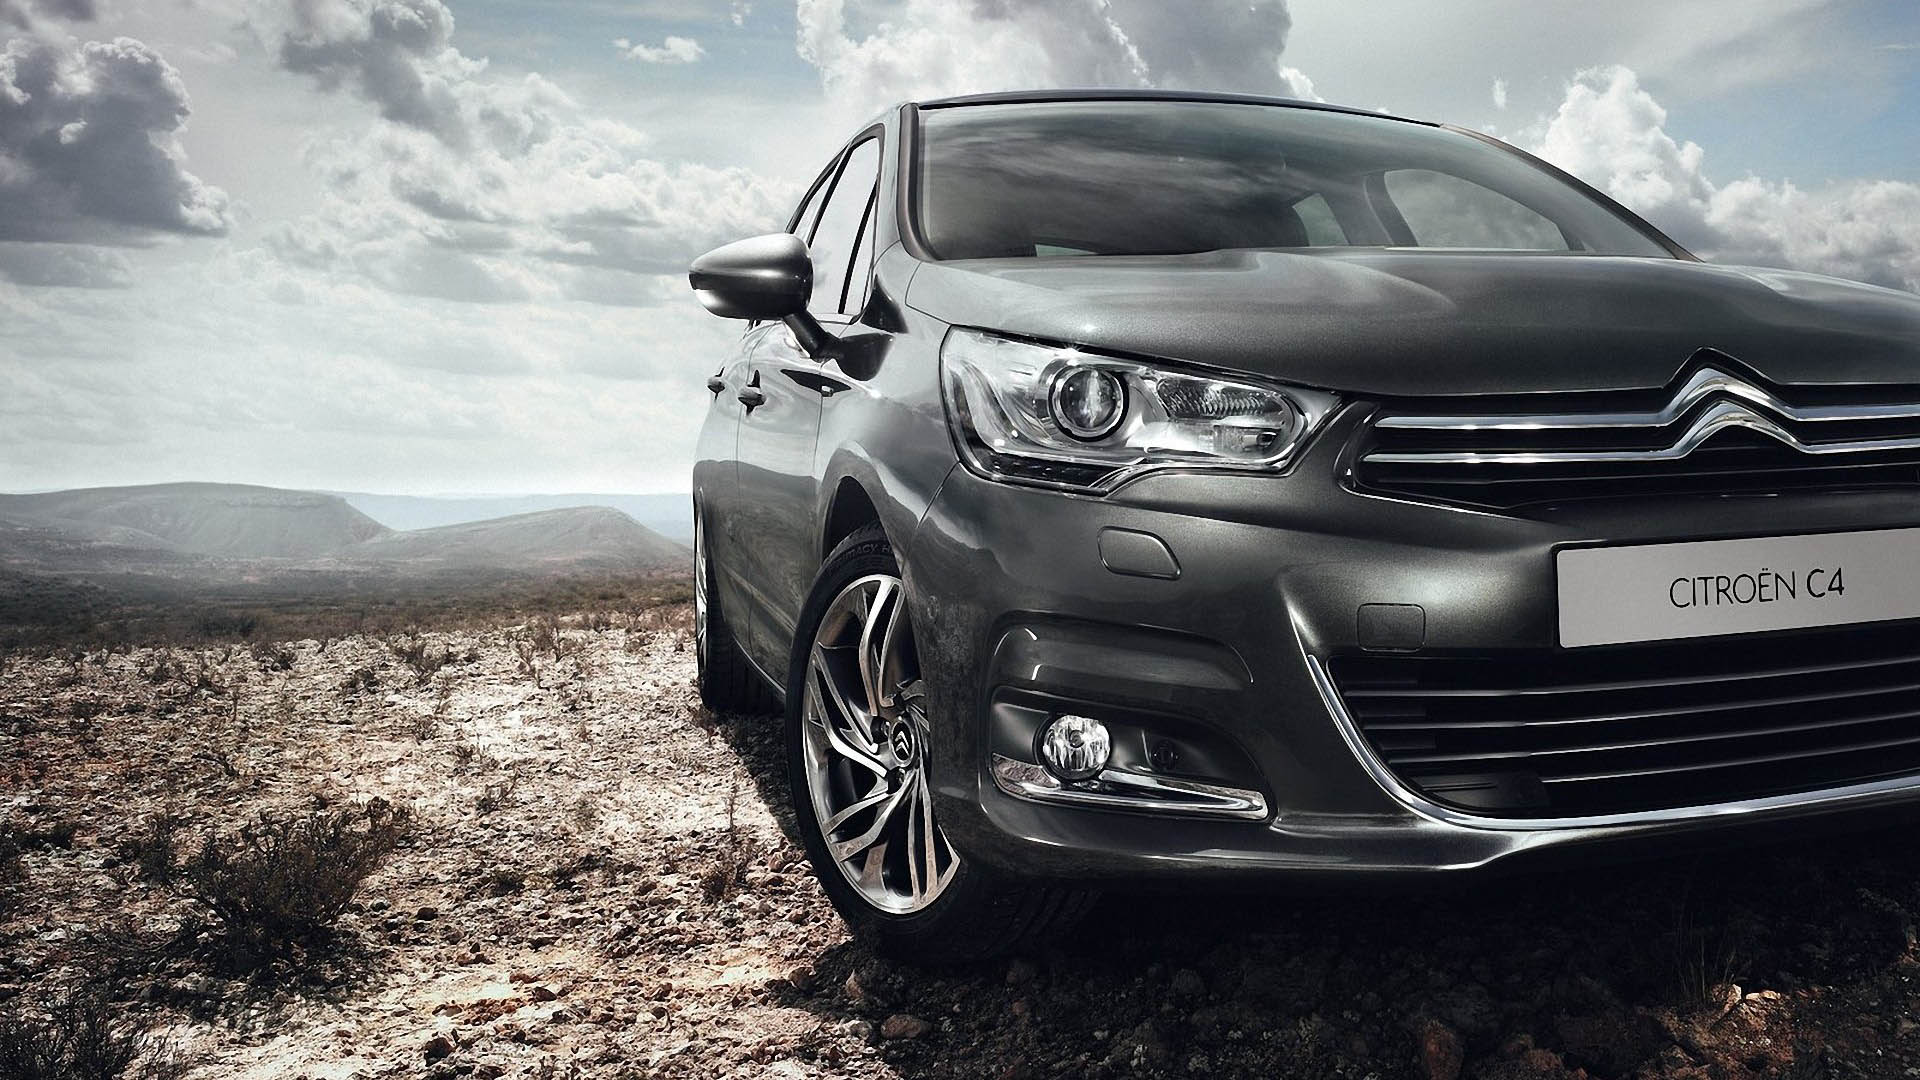 hd citroen ds4 wallpapers full hd pictures. Black Bedroom Furniture Sets. Home Design Ideas